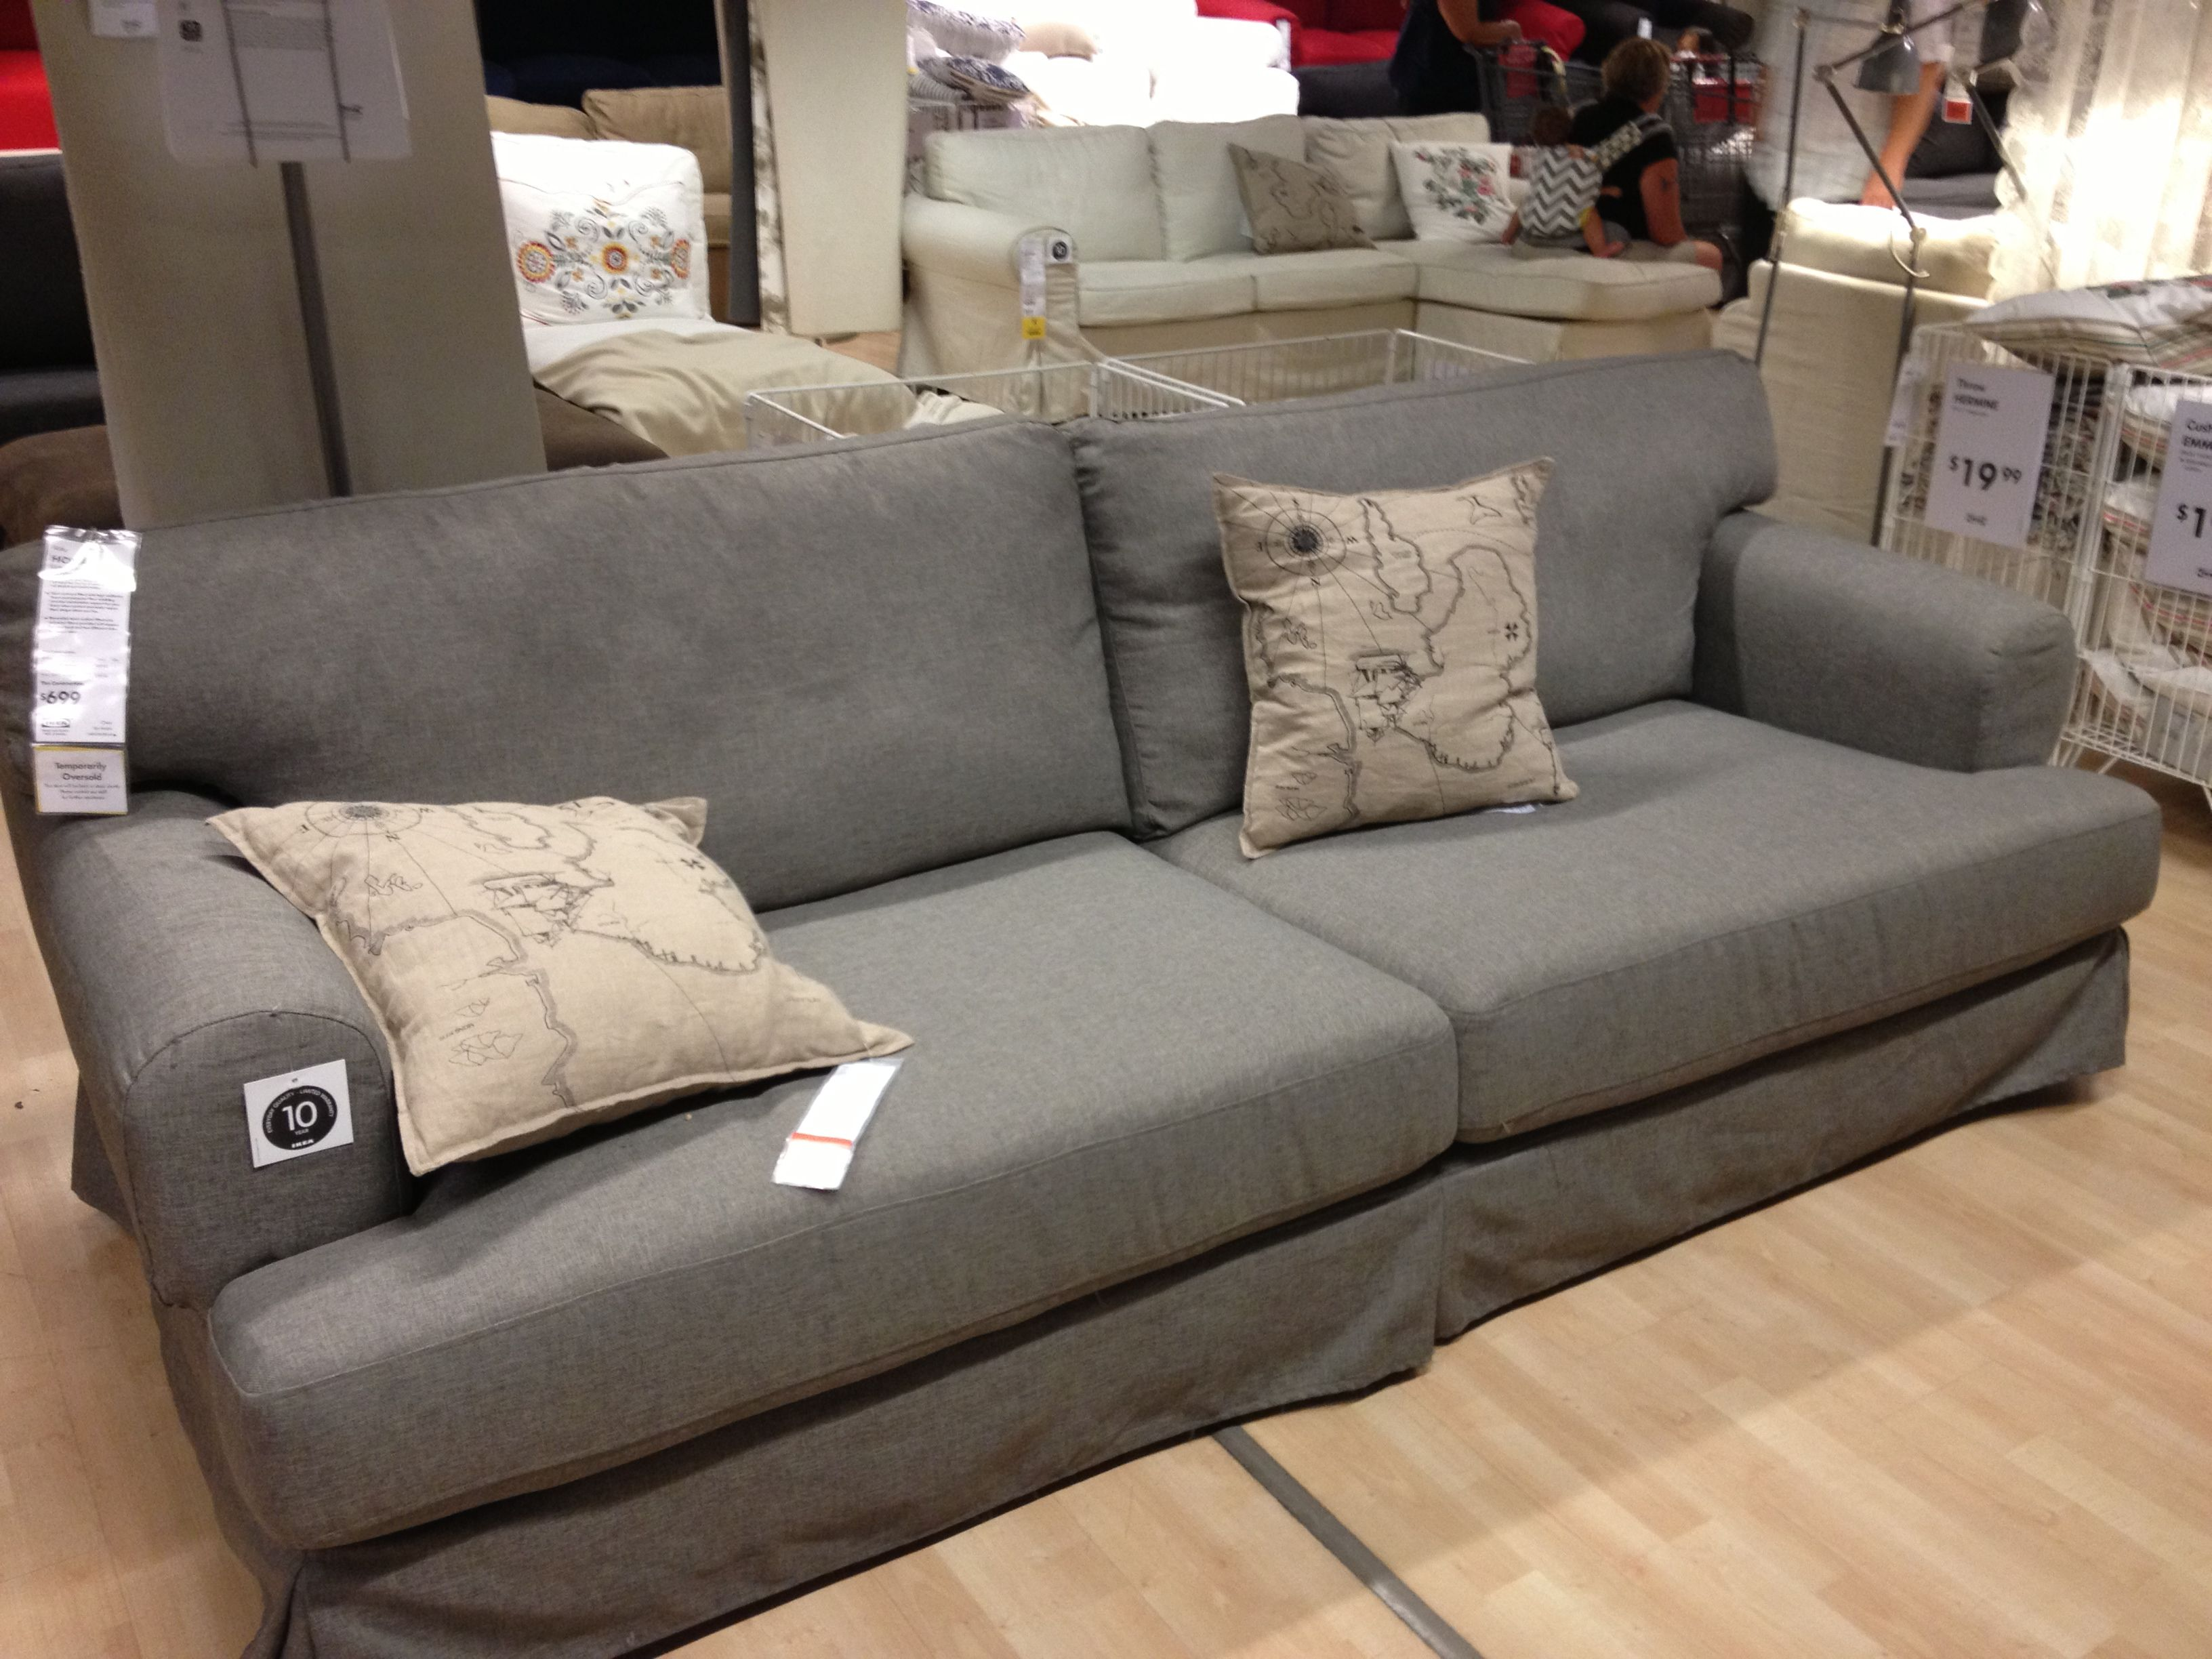 Hovas sofa ikea 96 inches long Tech